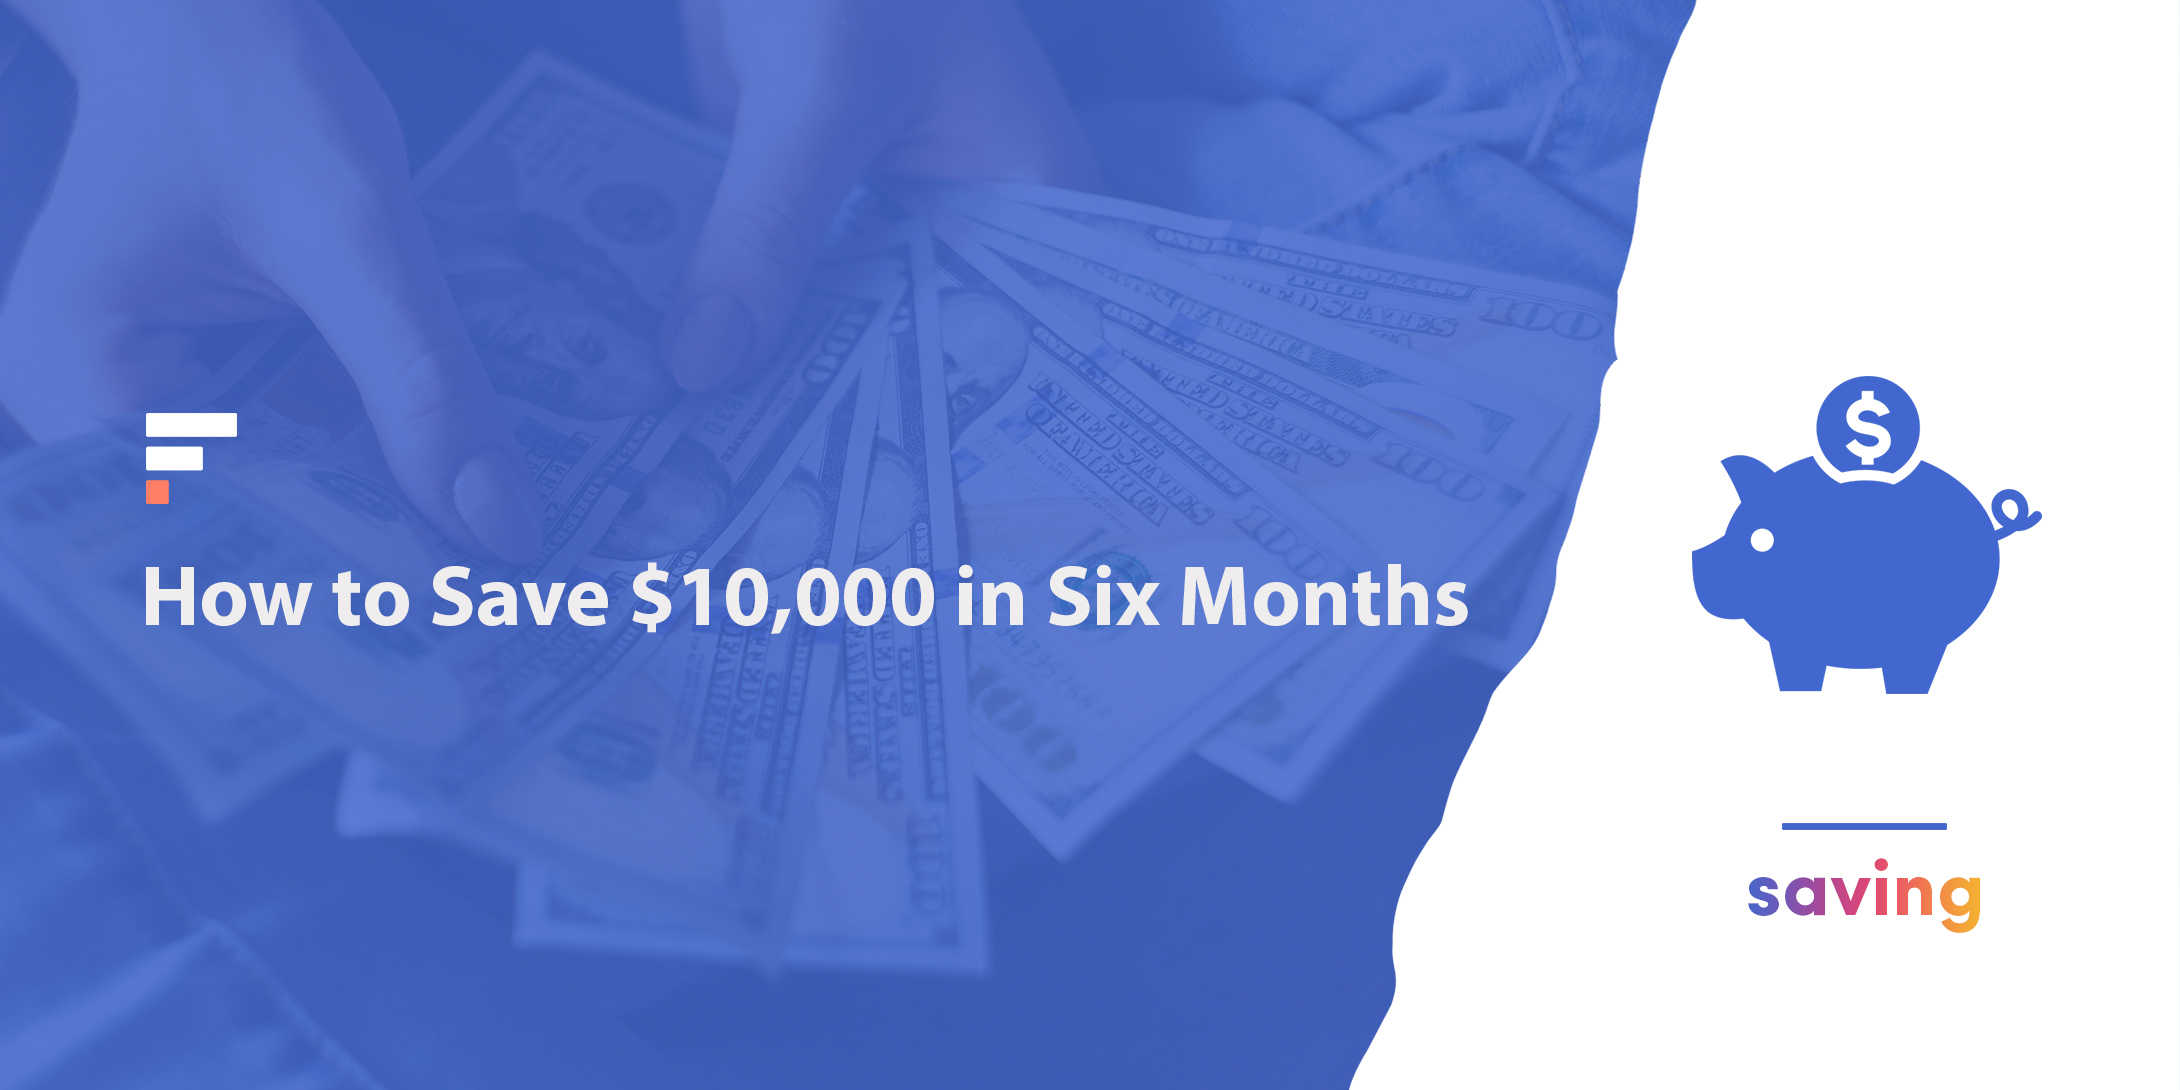 How to save $10,000 in six months